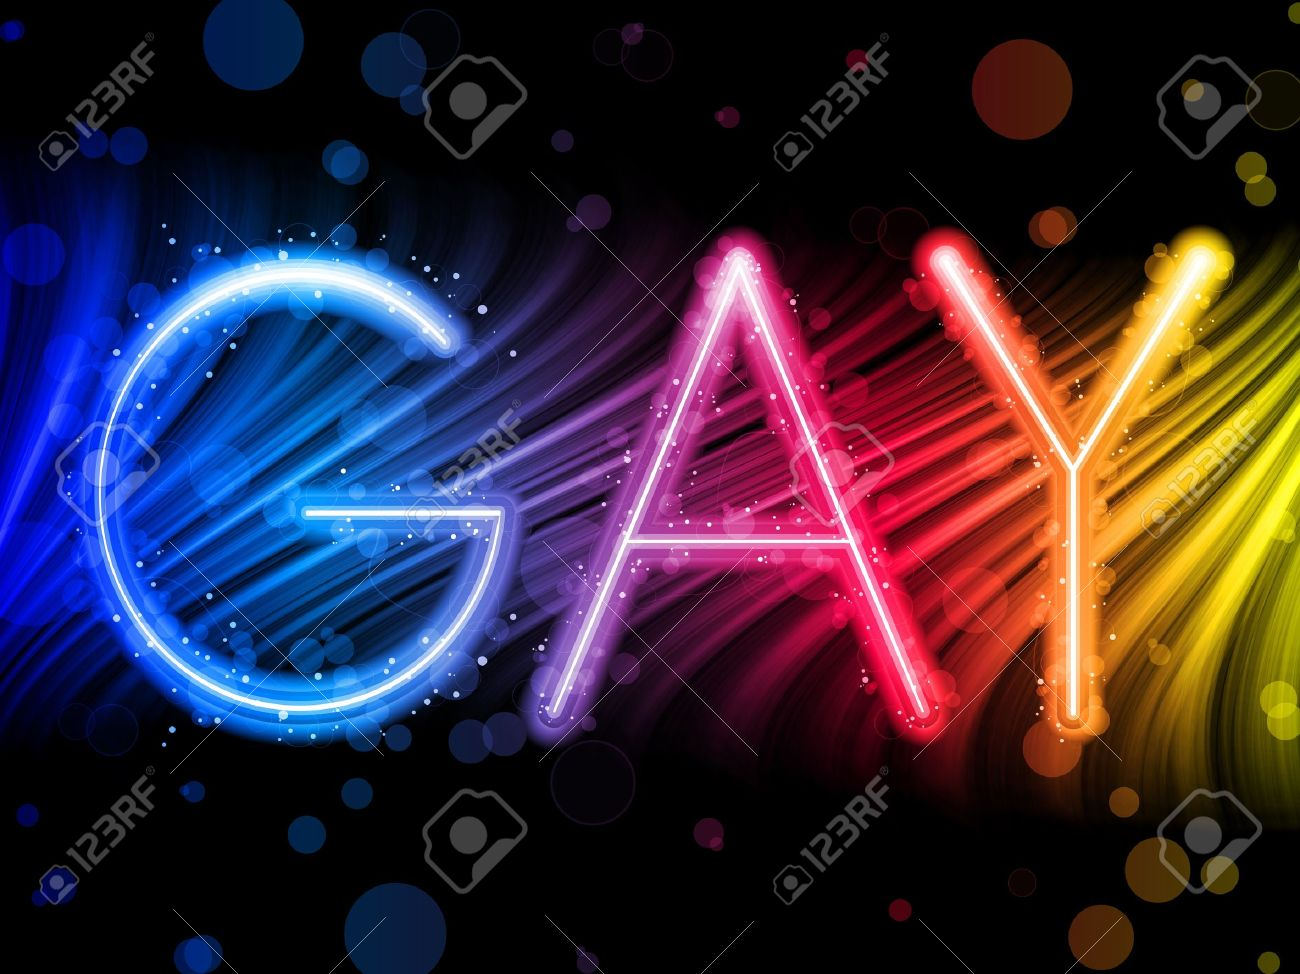 Gay Pride Abstract Colorful Waves on Black Background Stock Vector - 7743658